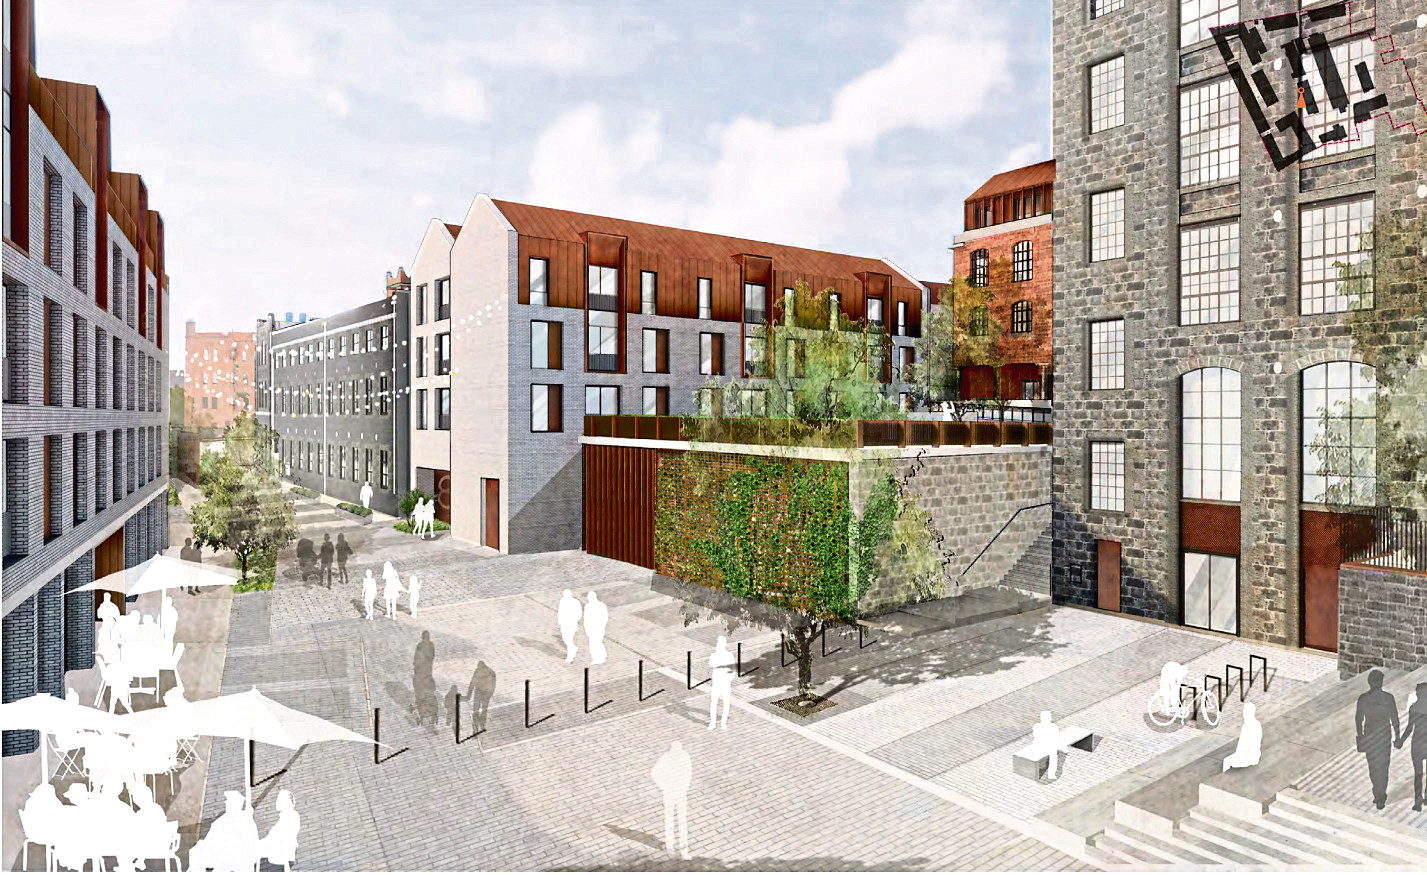 New images showing plans for Aberdeen's Broadford Works